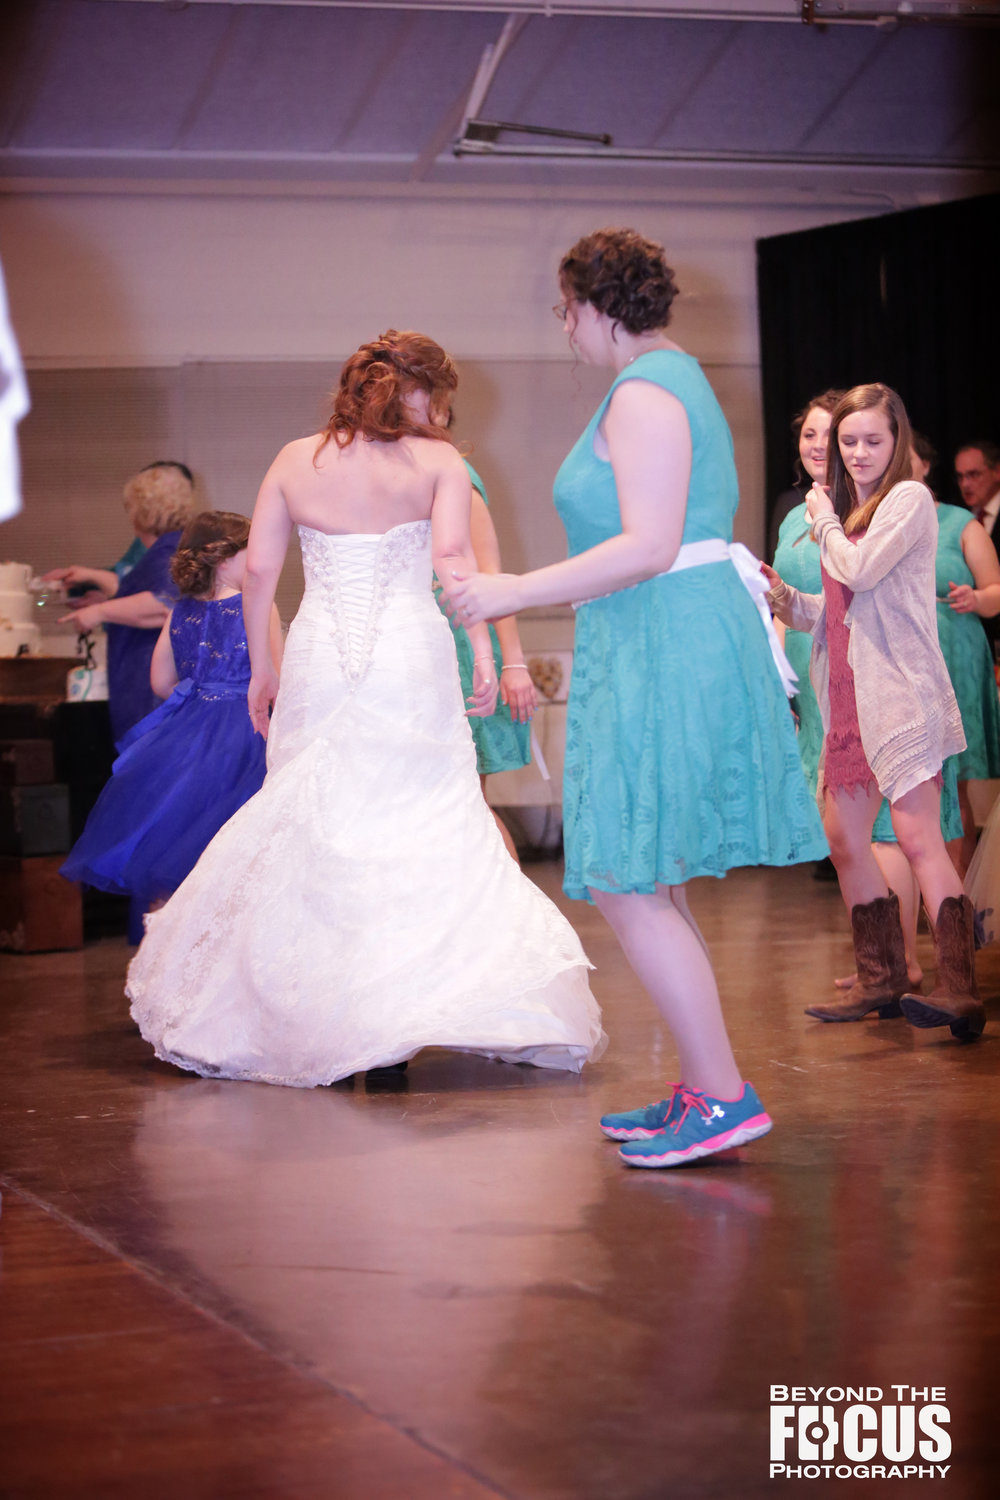 Alex_Katie_WeddingReception__129.jpg